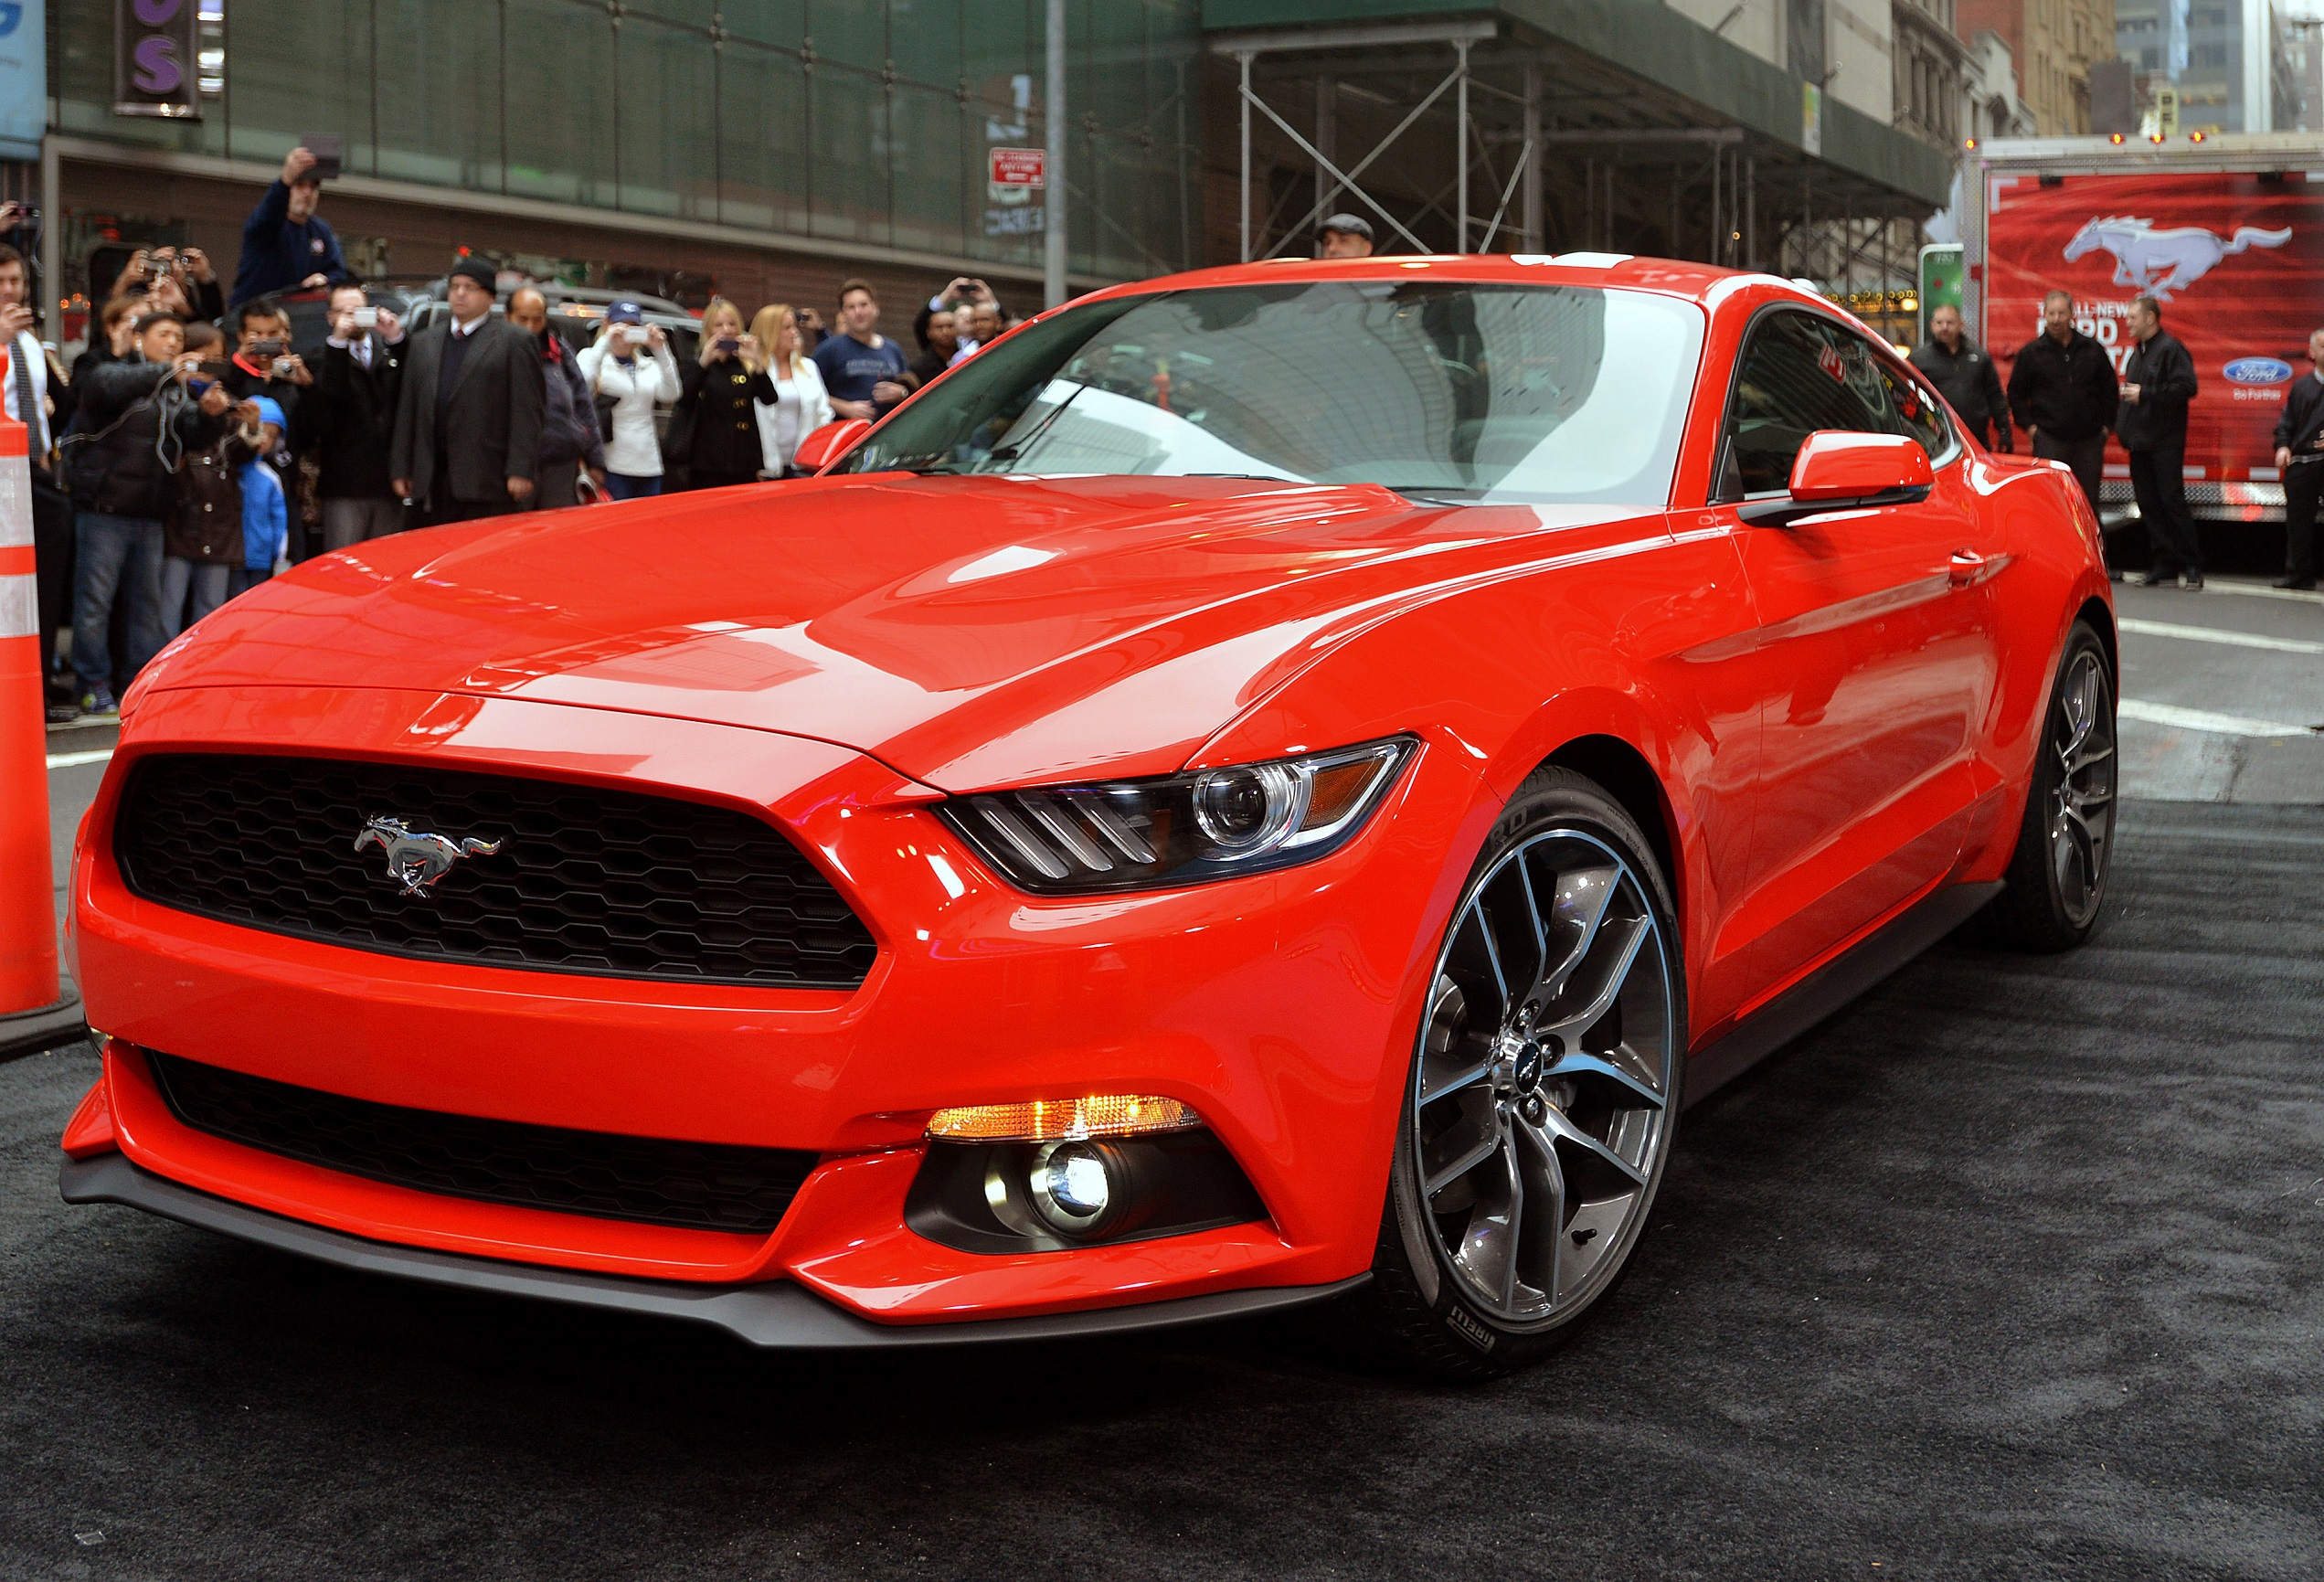 lincoln considering 2015 mustang based model news top speed. Black Bedroom Furniture Sets. Home Design Ideas